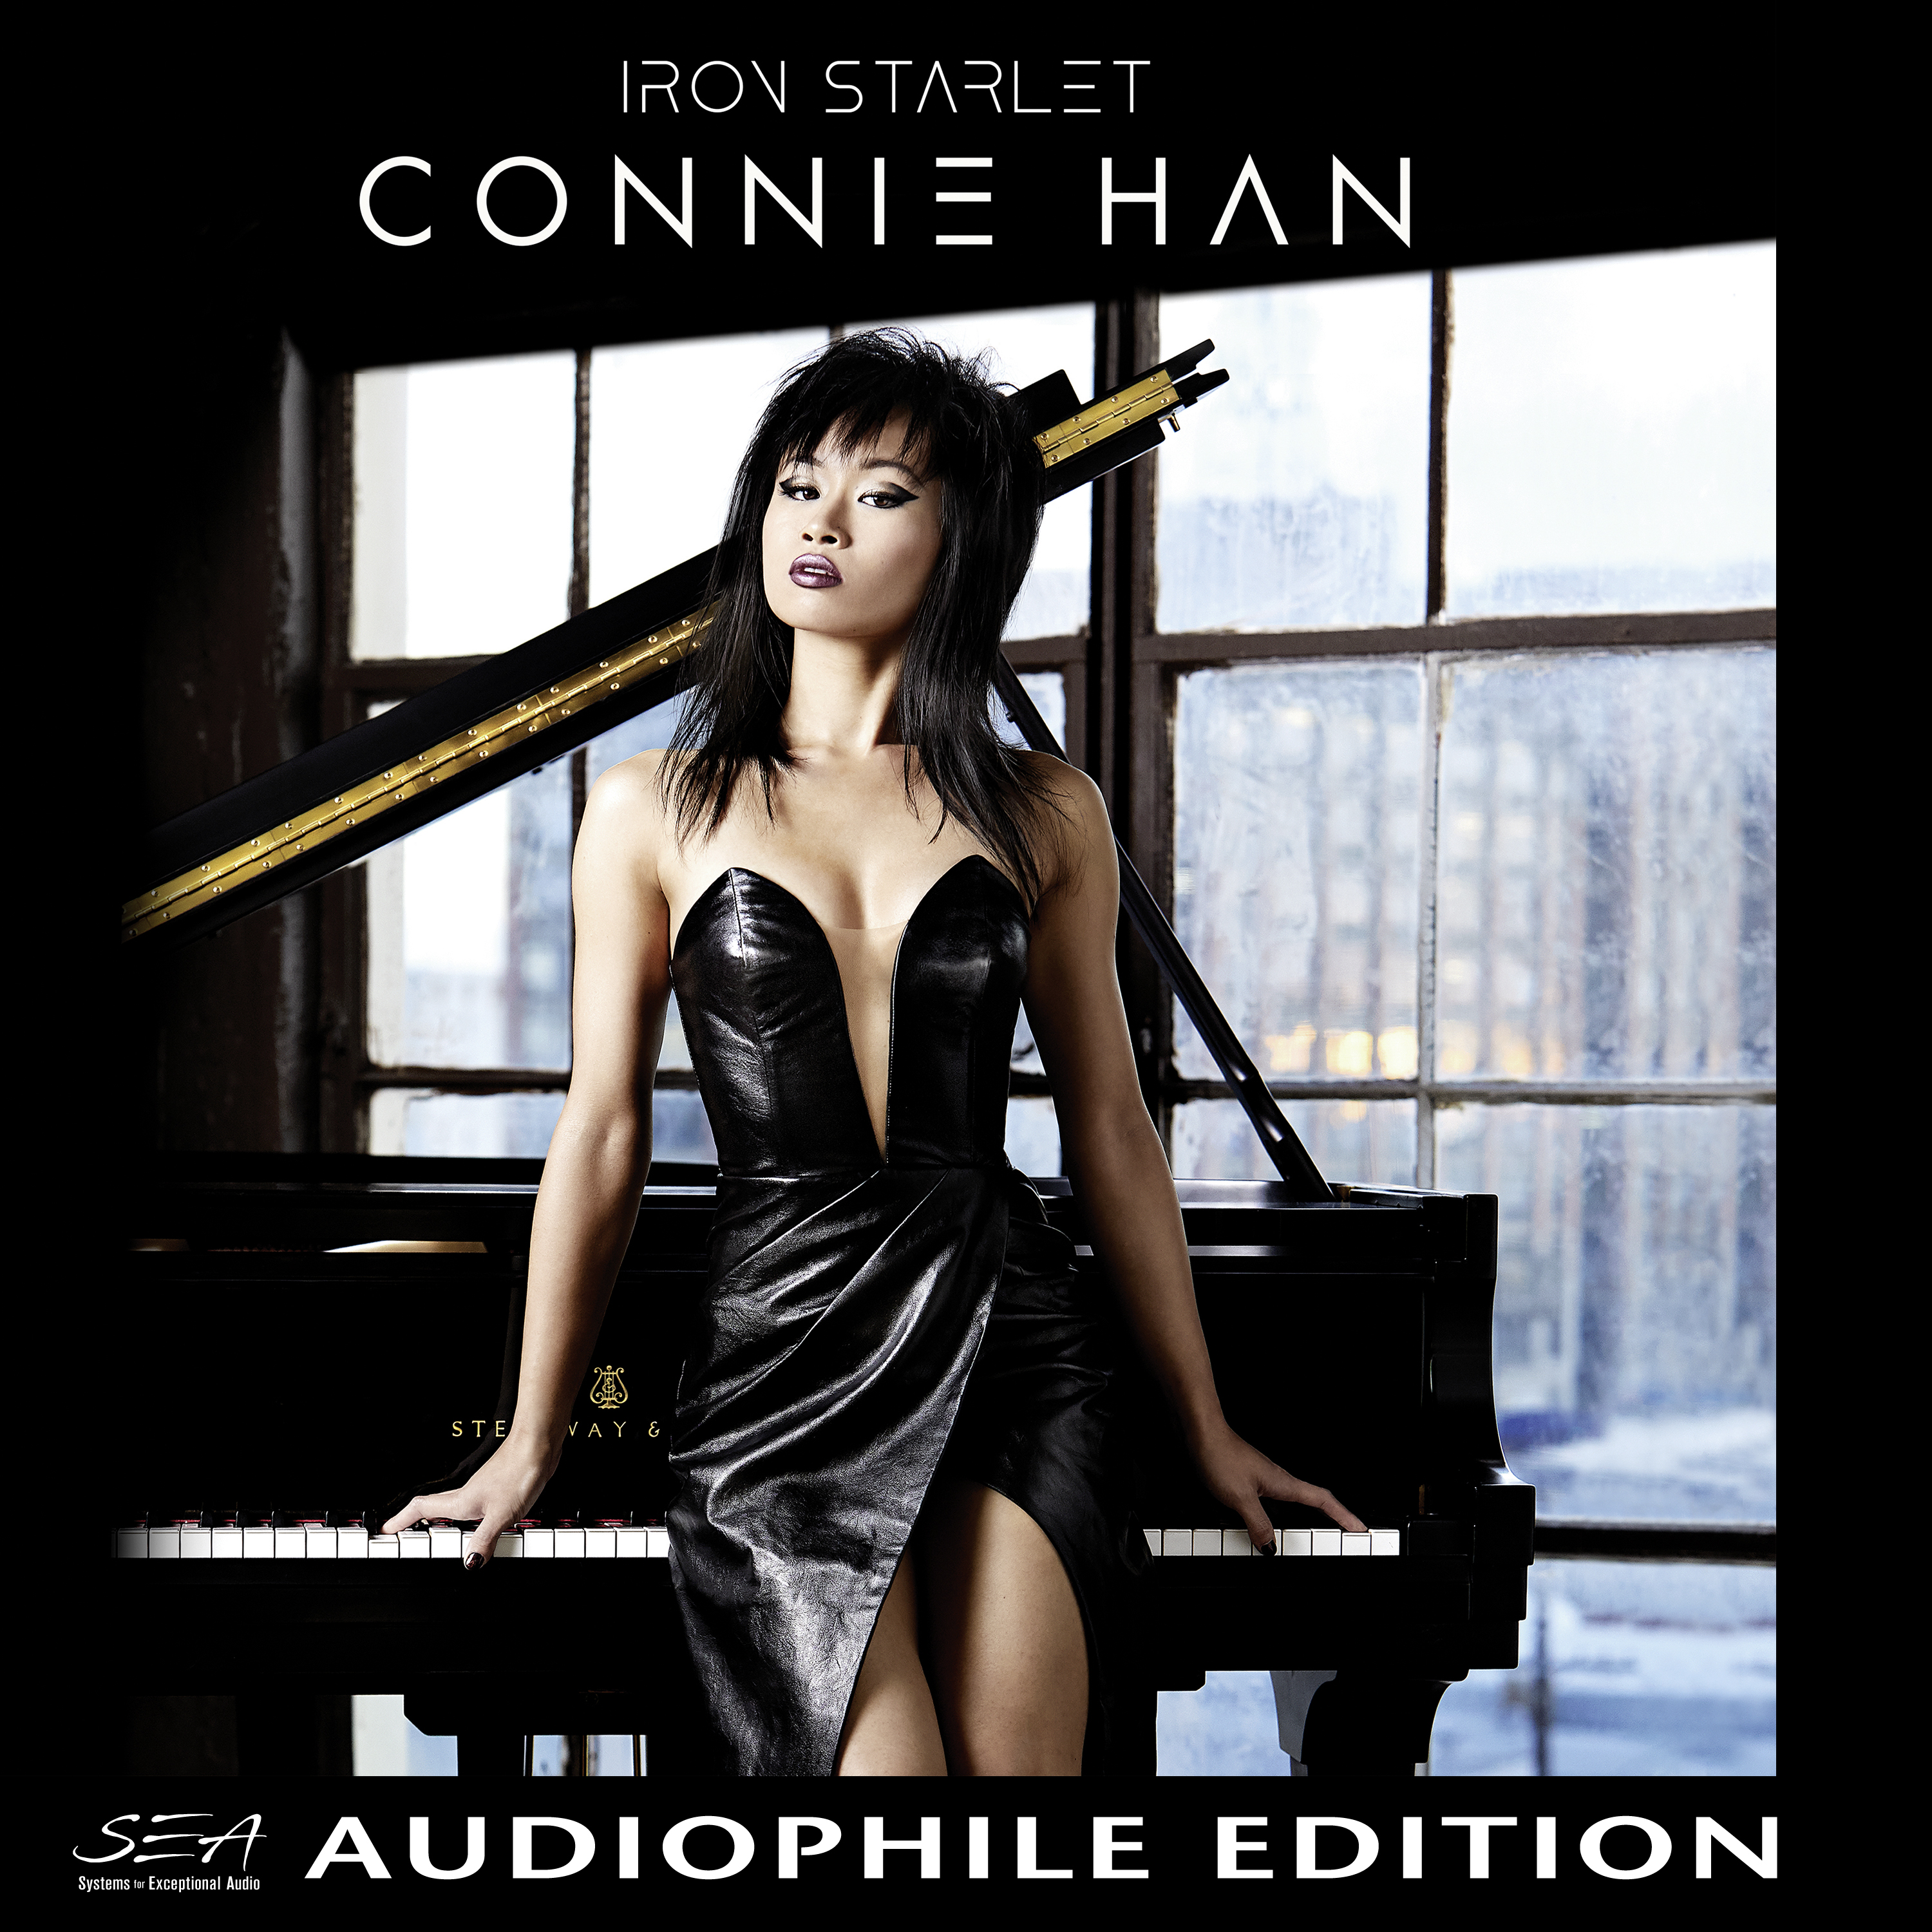 Connie Han - Iron Starlet - Cover Image